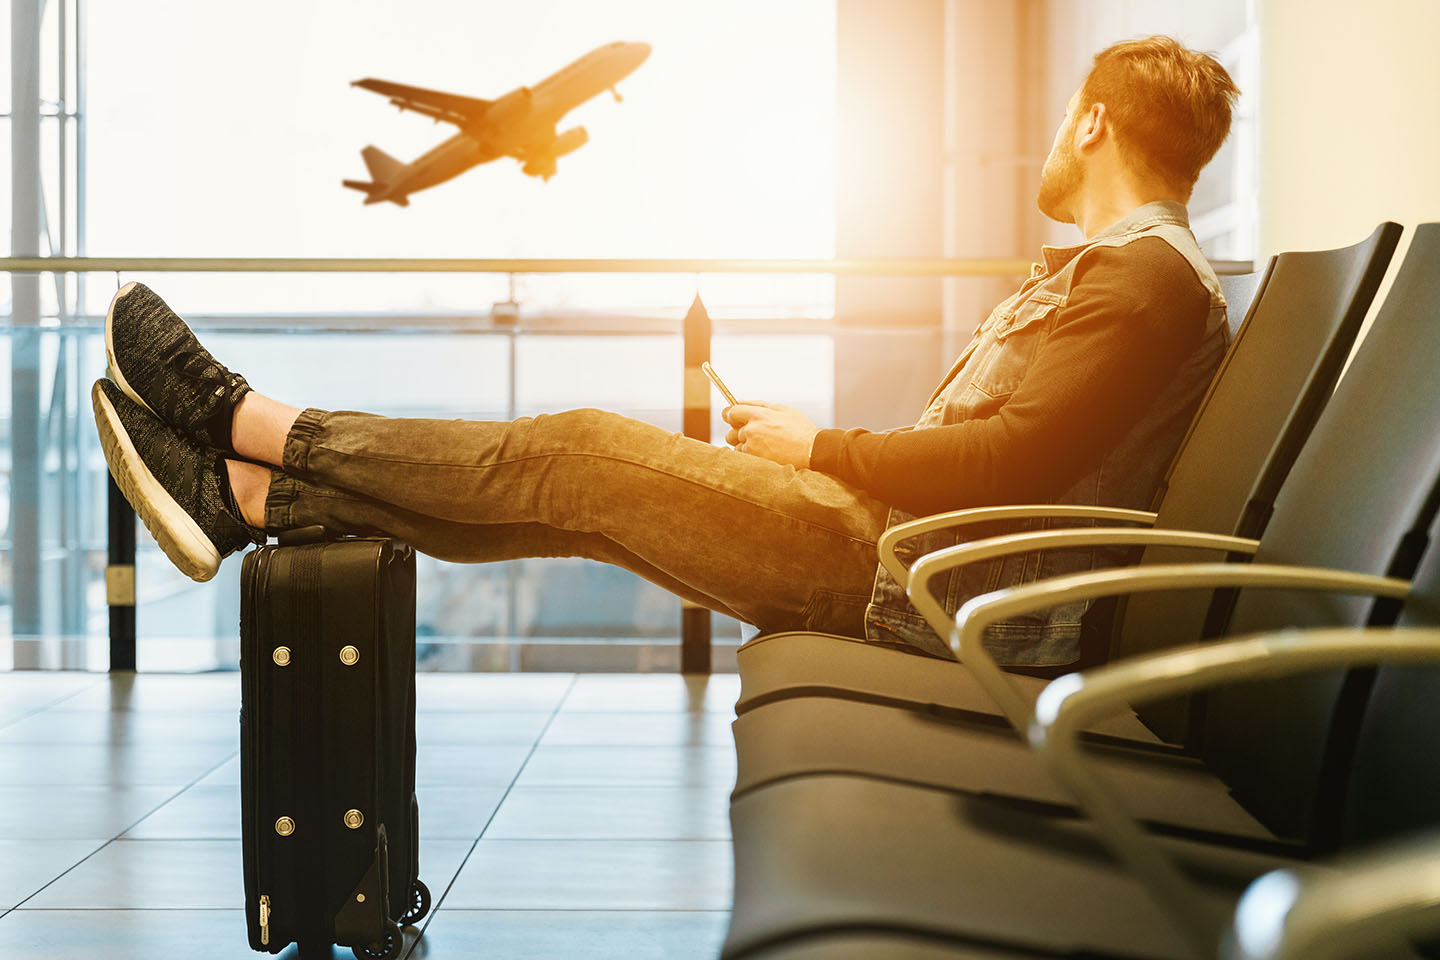 Man sitting on gang chair with feet on luggage looking at airplane,